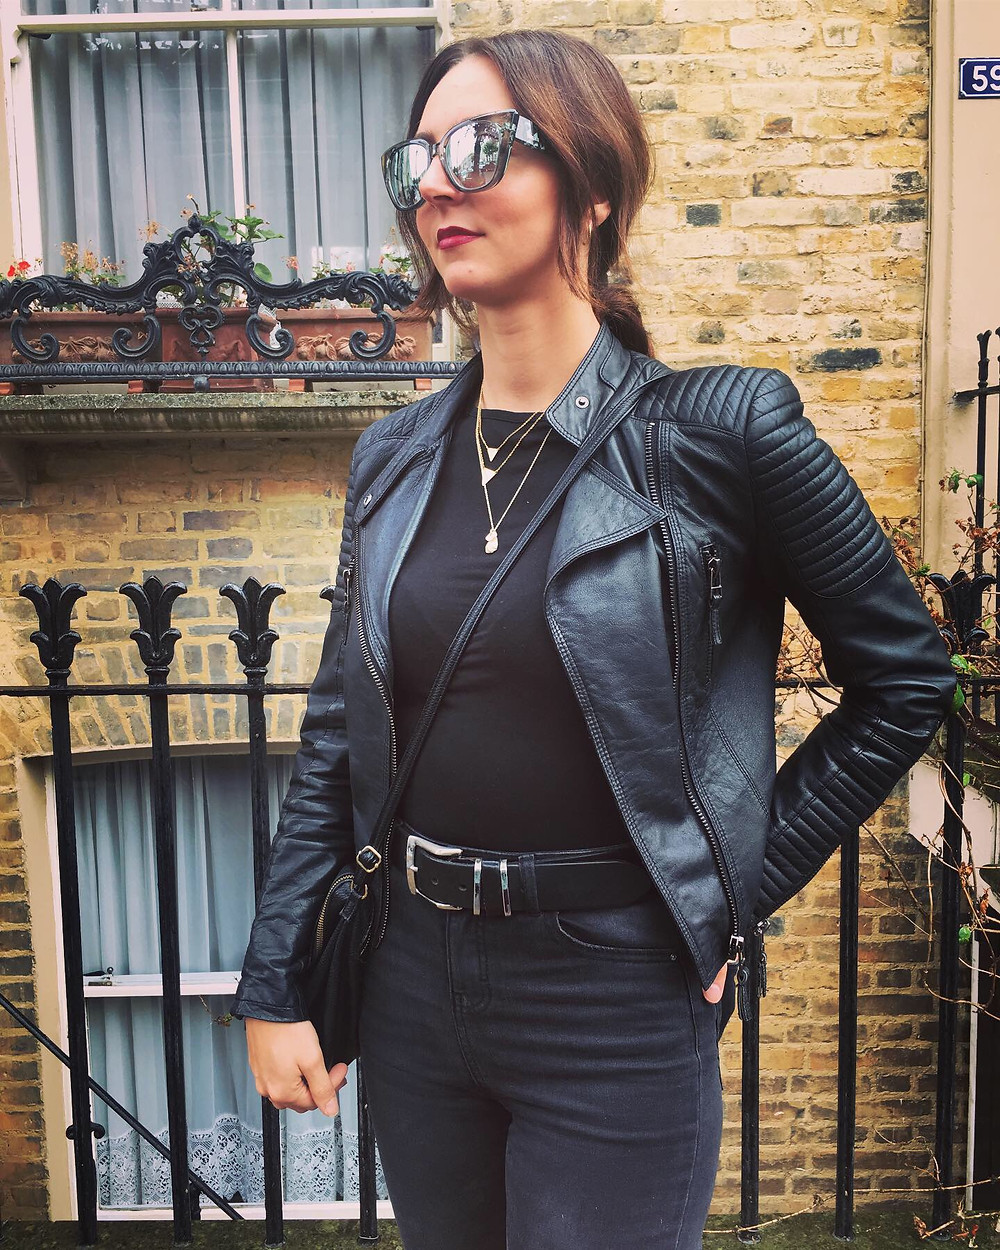 -Black leather jacket: Zara -Charcoal jeans: Primark - Sunglasses: Just Cavalli - Triangles necklace: Faye - Pebble necklace: Oliver Bonas